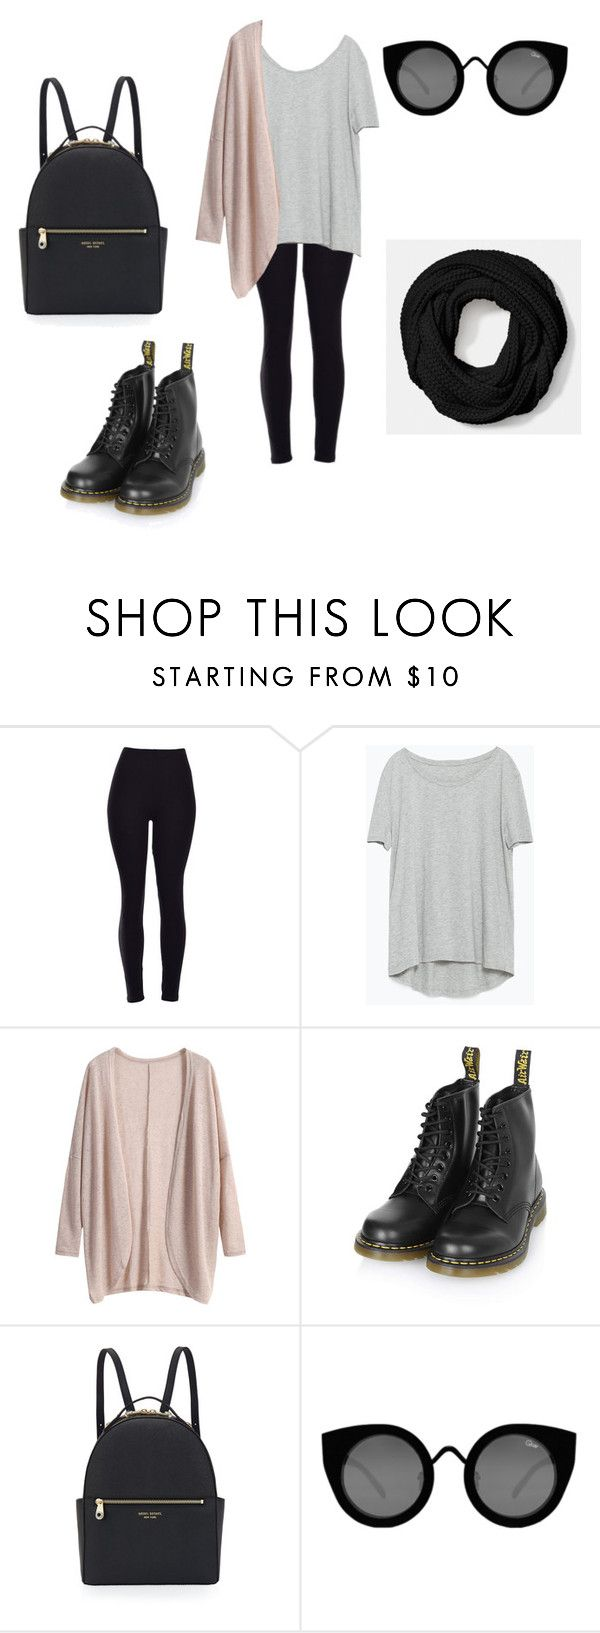 """""""How to wear Leggings #13."""" by beggars ❤ liked on Polyvore featuring Zara, Dr. Martens, Henri Bendel, Quay, Coach, women's clothing, women's fashion, women, female and woman"""